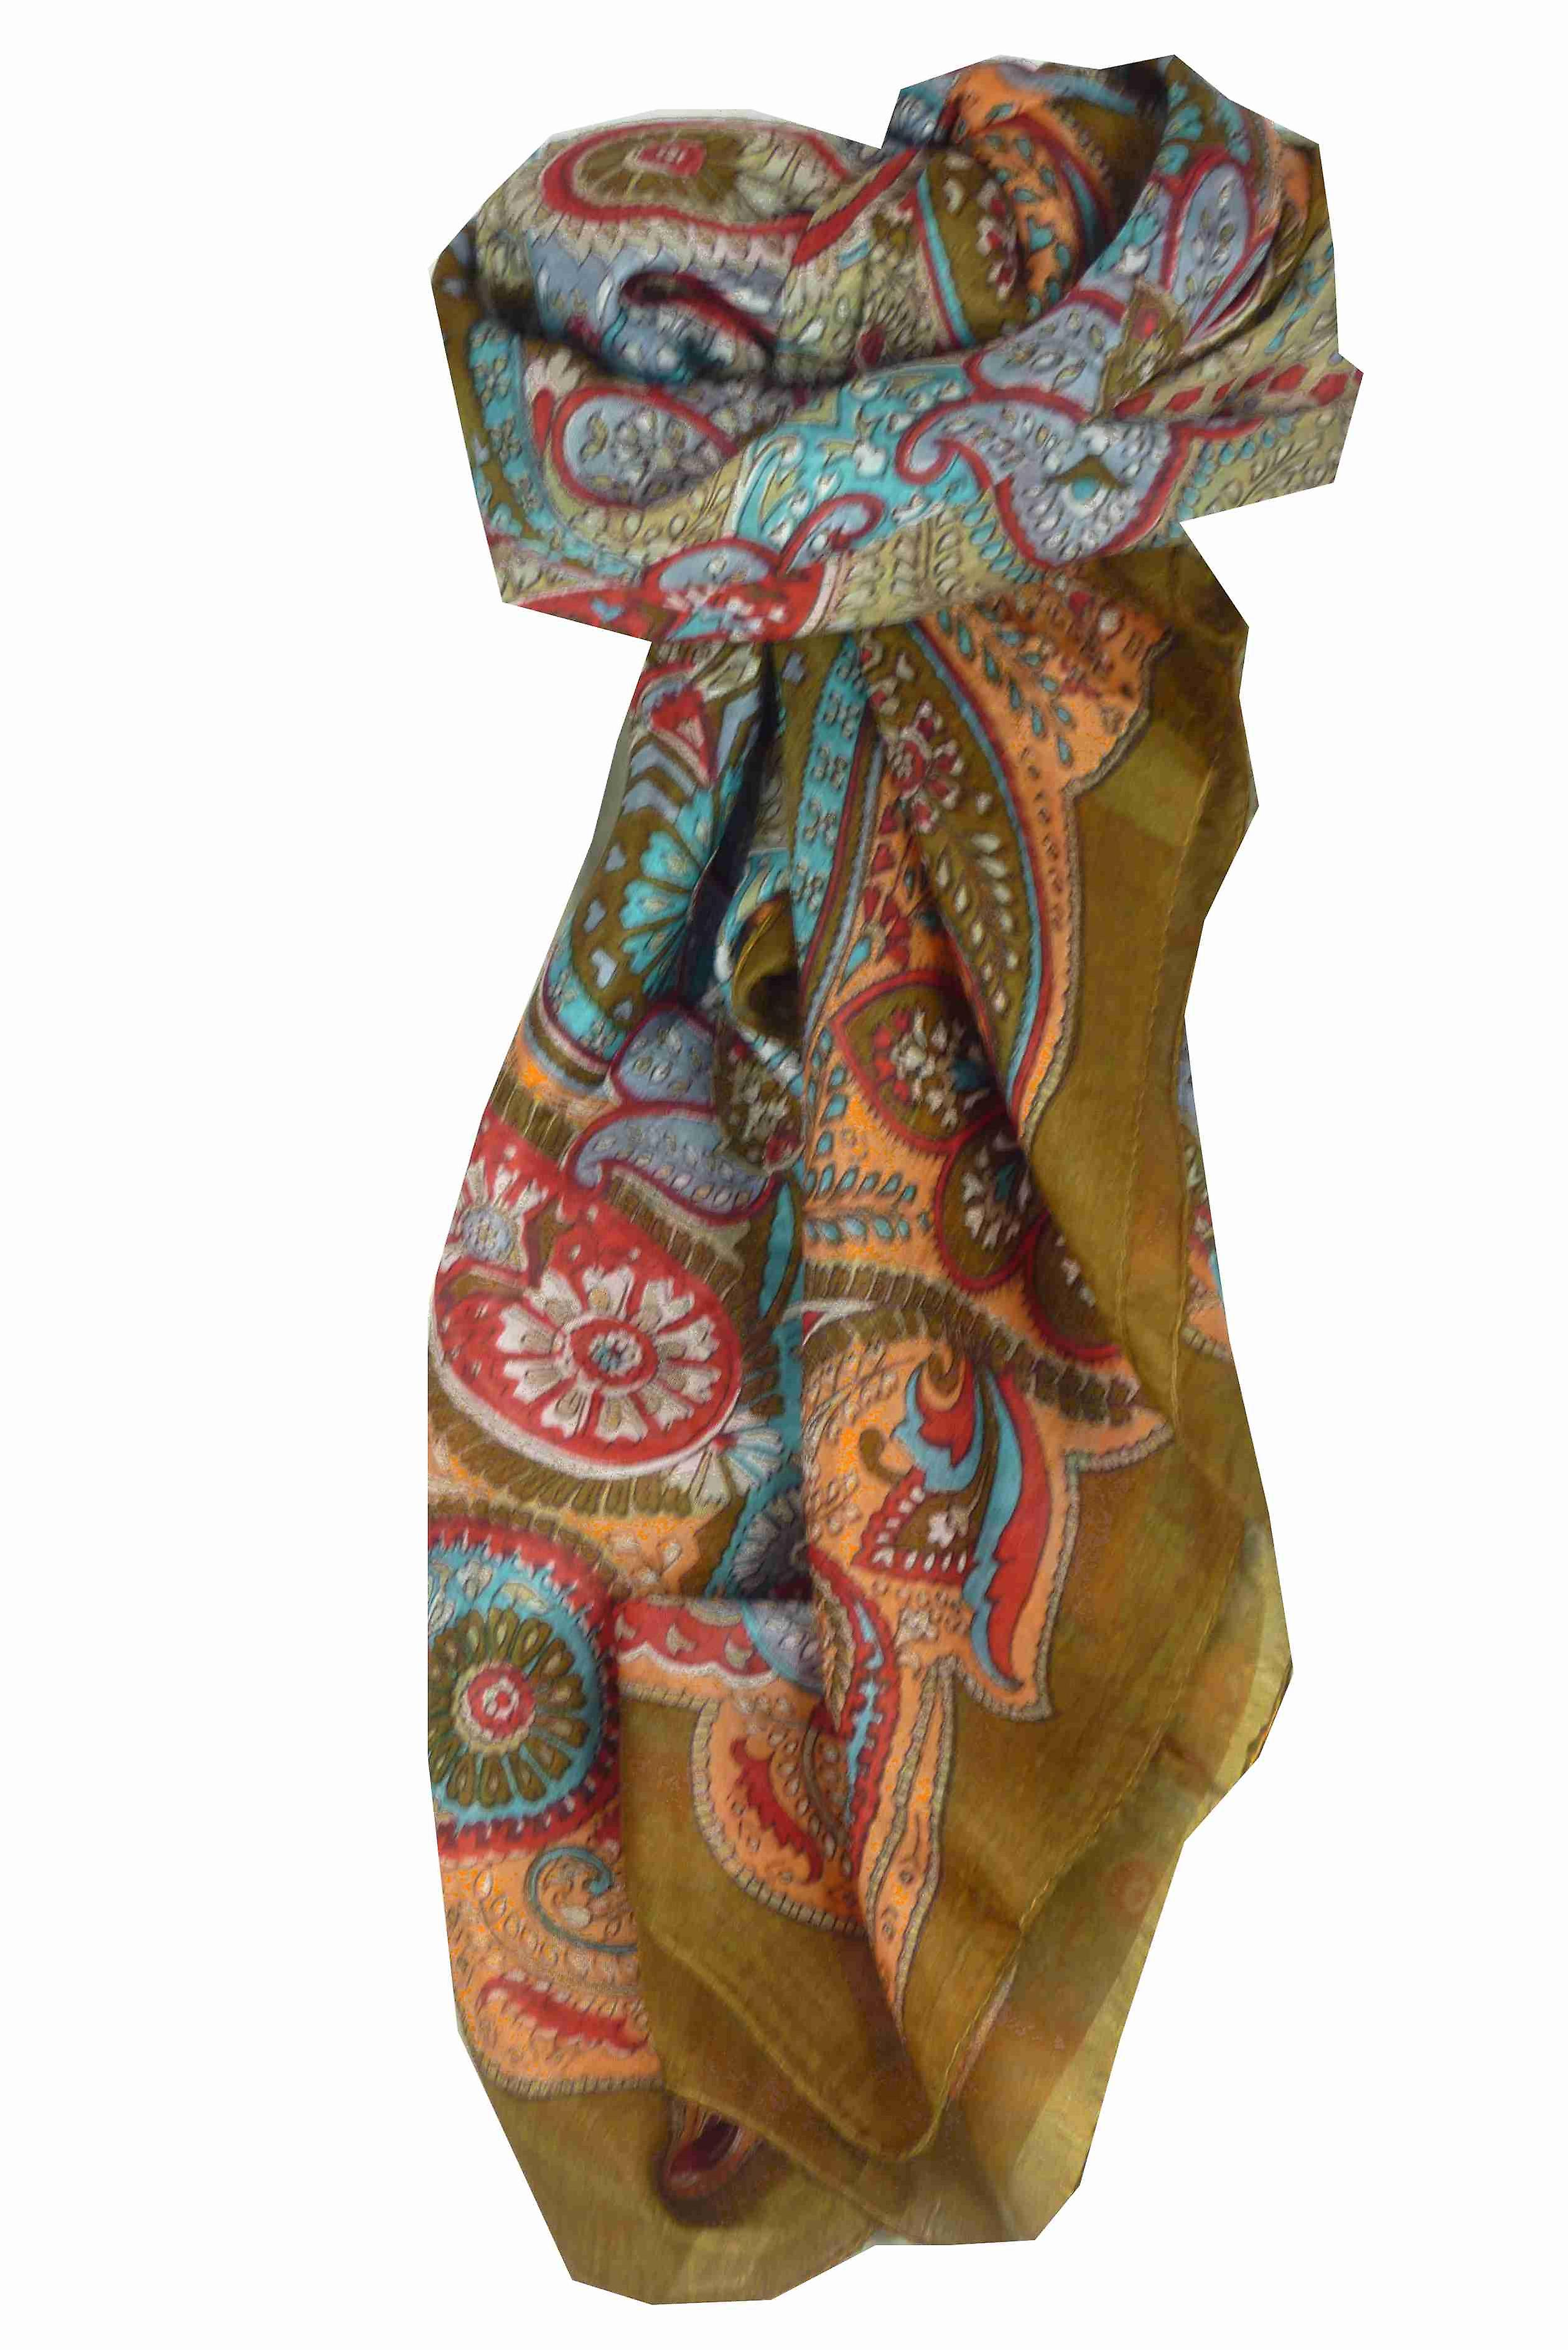 Mulberry Silk Traditional Square Scarf Girij Caramel by Pashmina & Silk